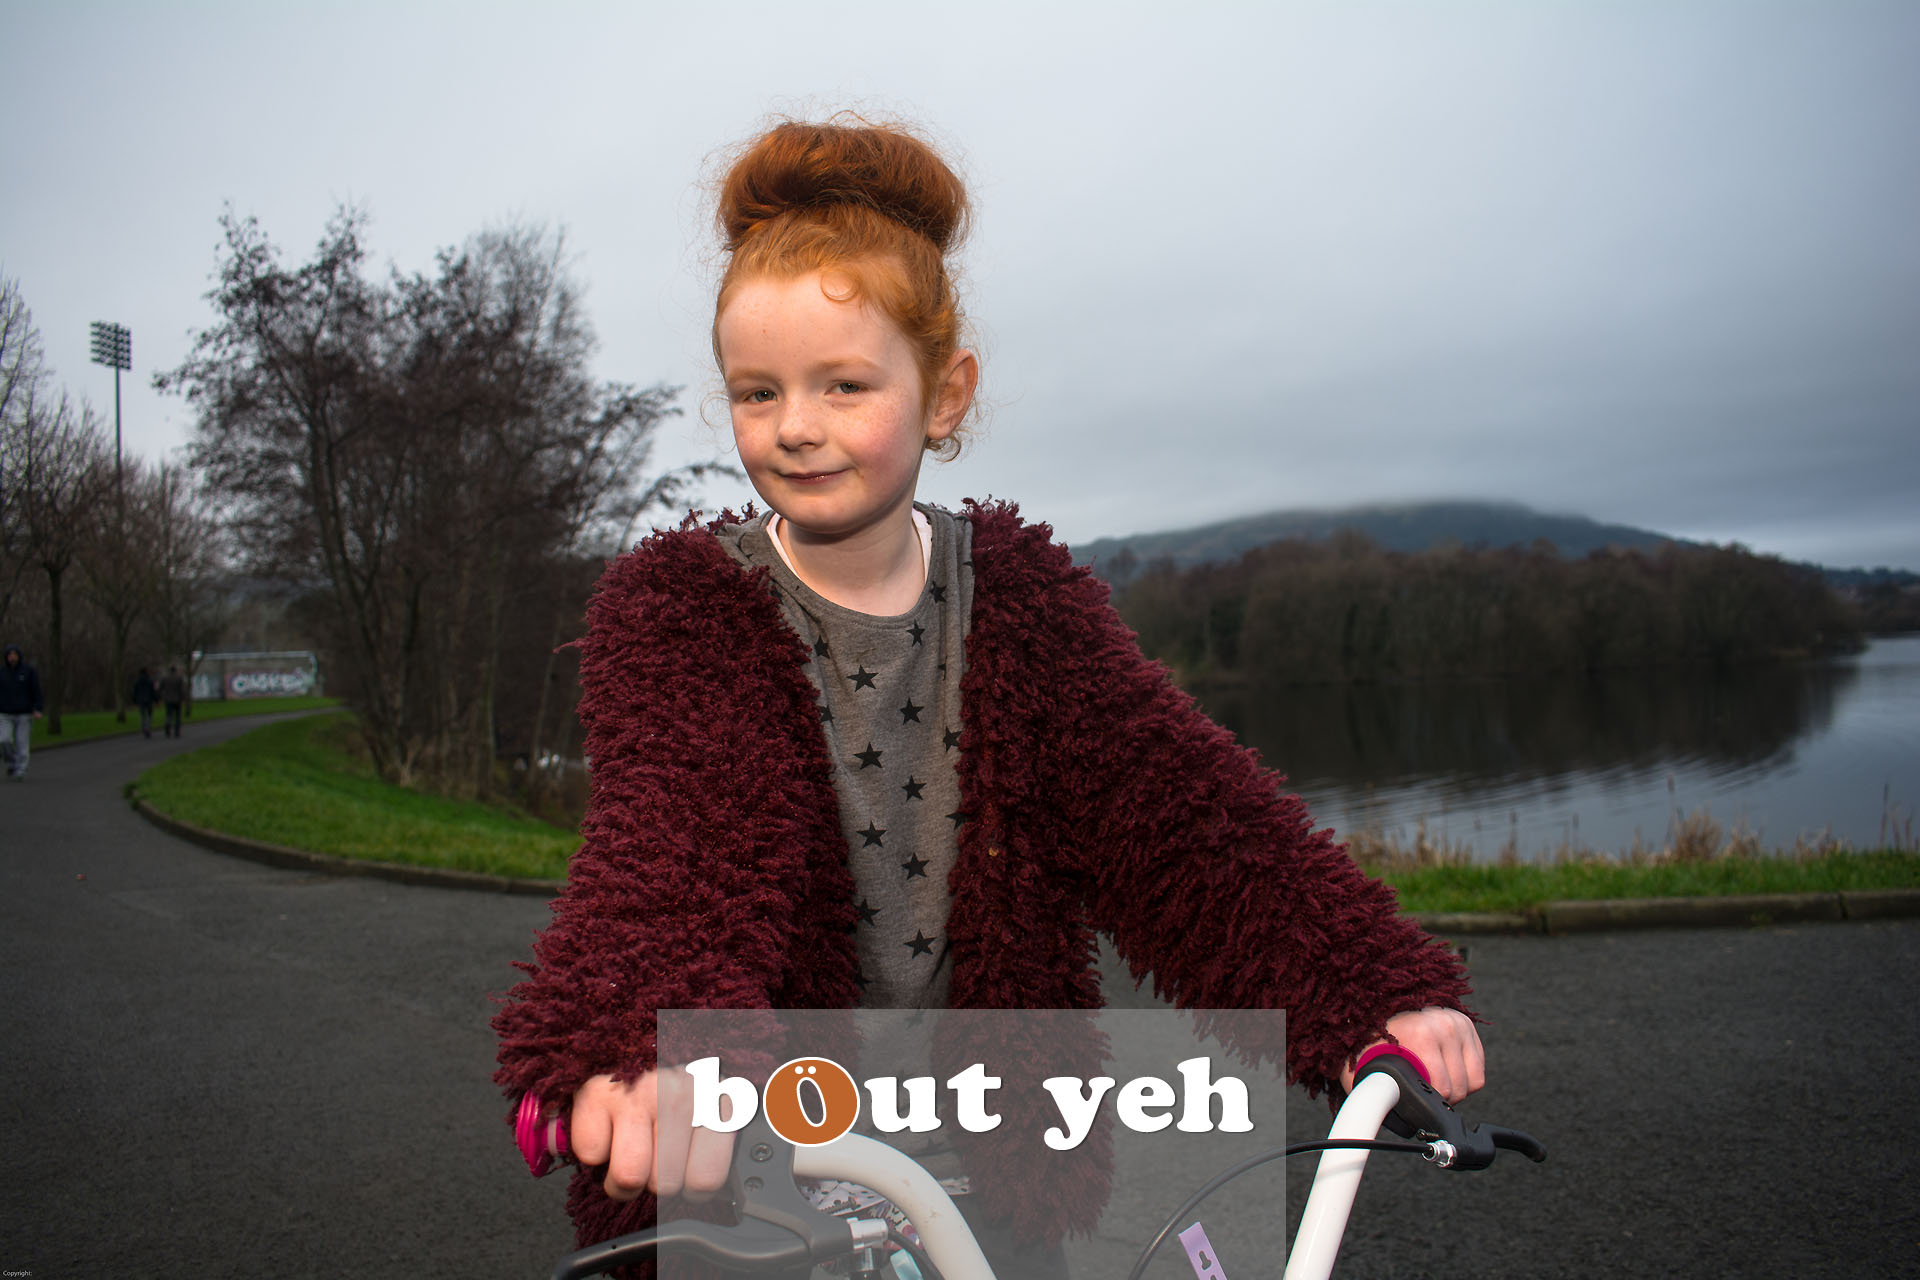 Red haired girl and bike, Waterworks, Belfast, Northern Ireland - bout yeh photographers Belfast photo 3994.